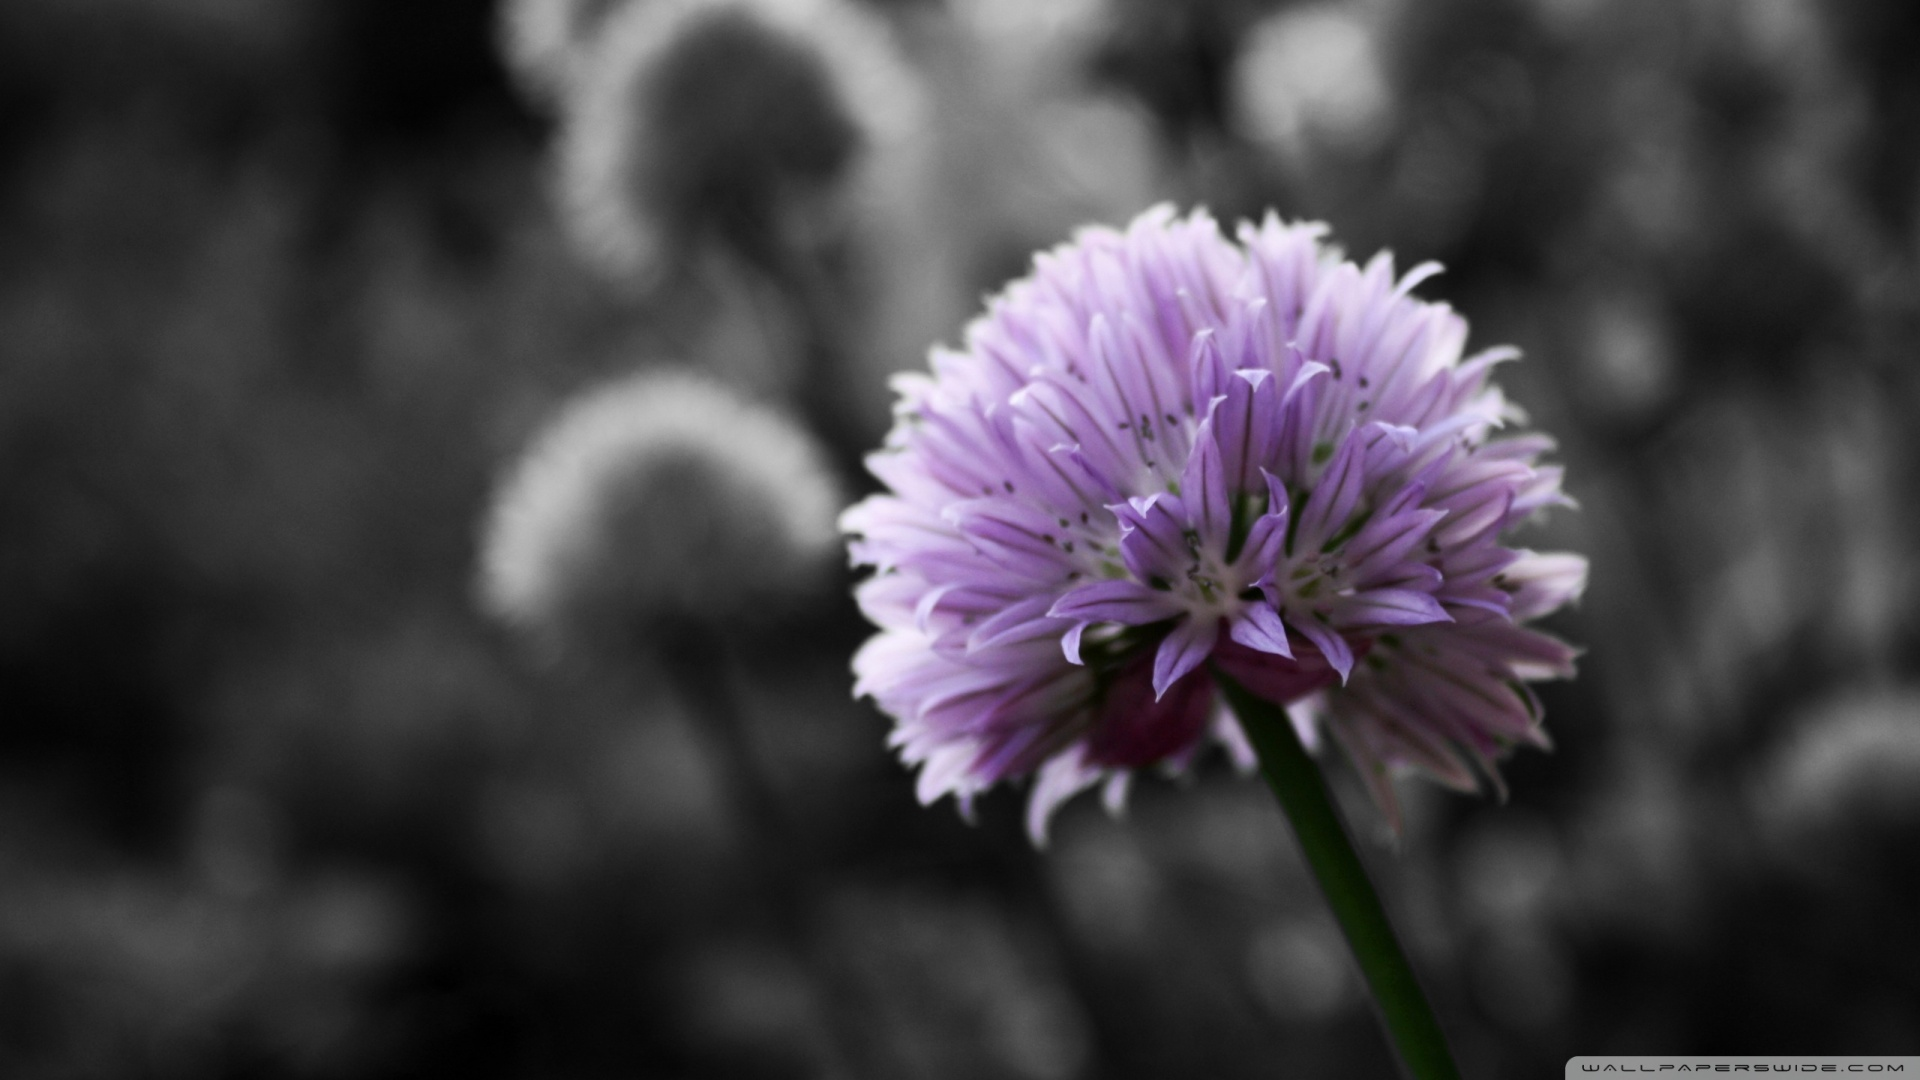 Purple Flower On Black And White Background Wallpaper 1920x1080